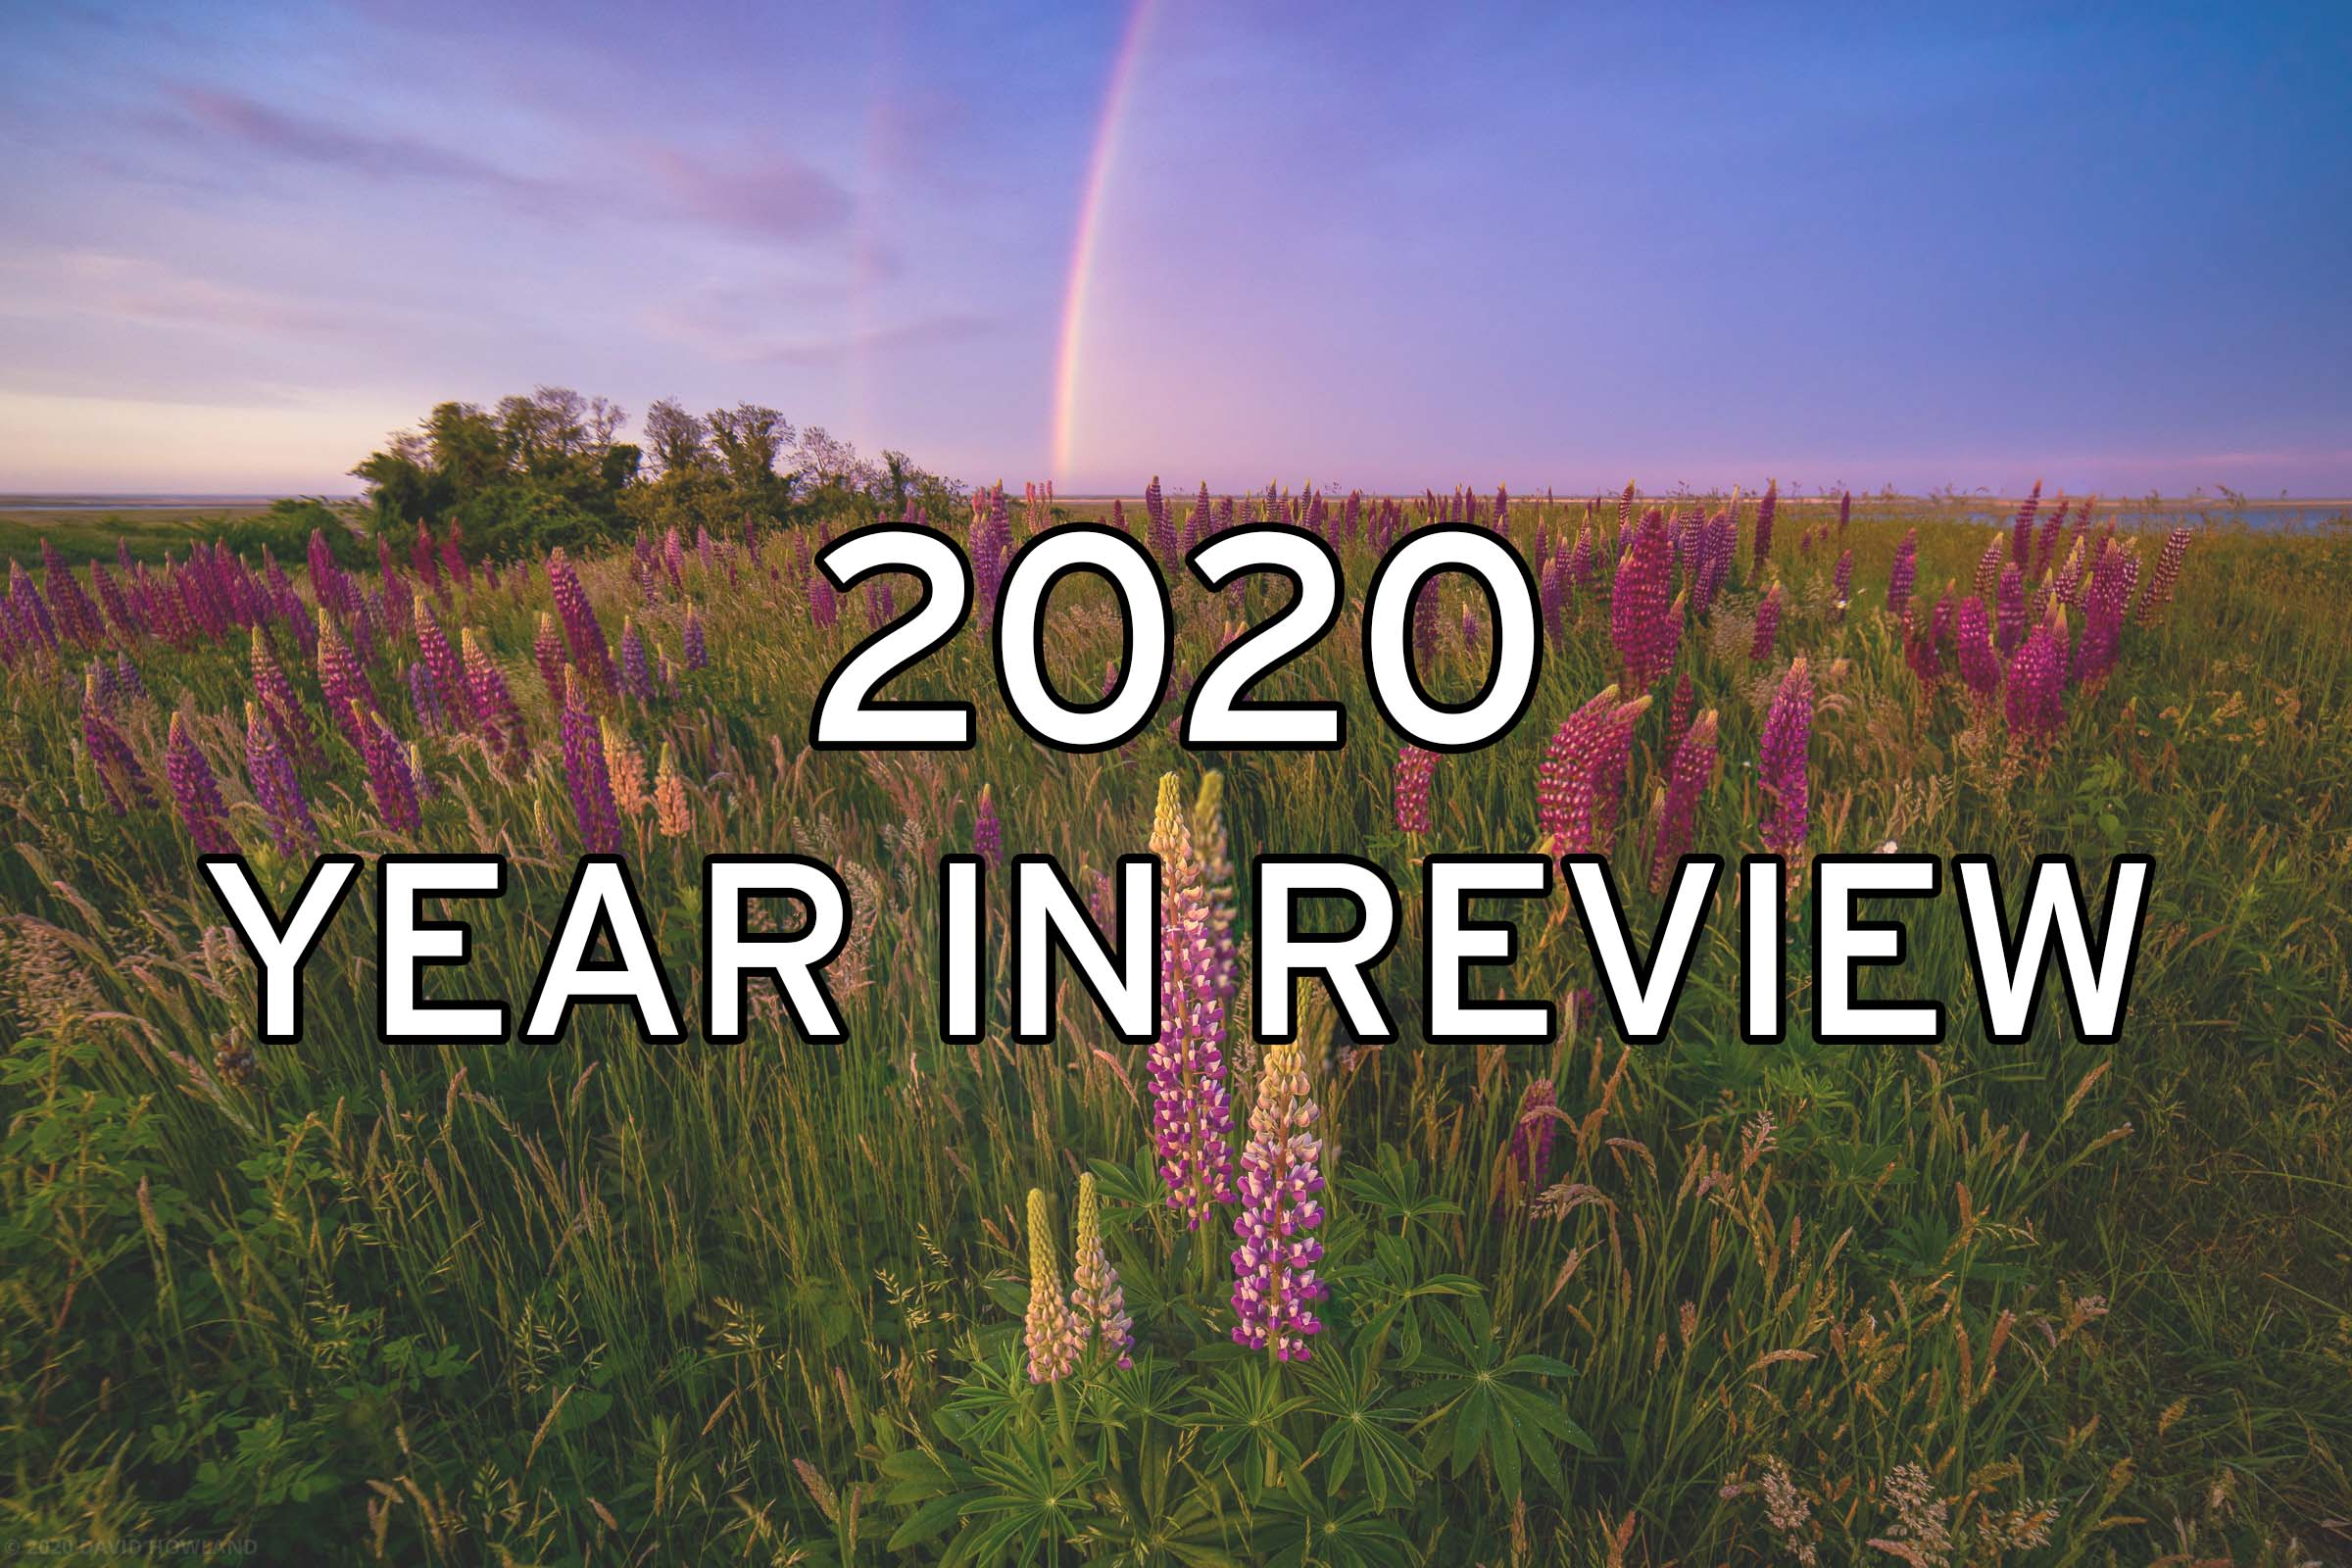 2020 In Review - My 13 Favorite Photos From Last Year